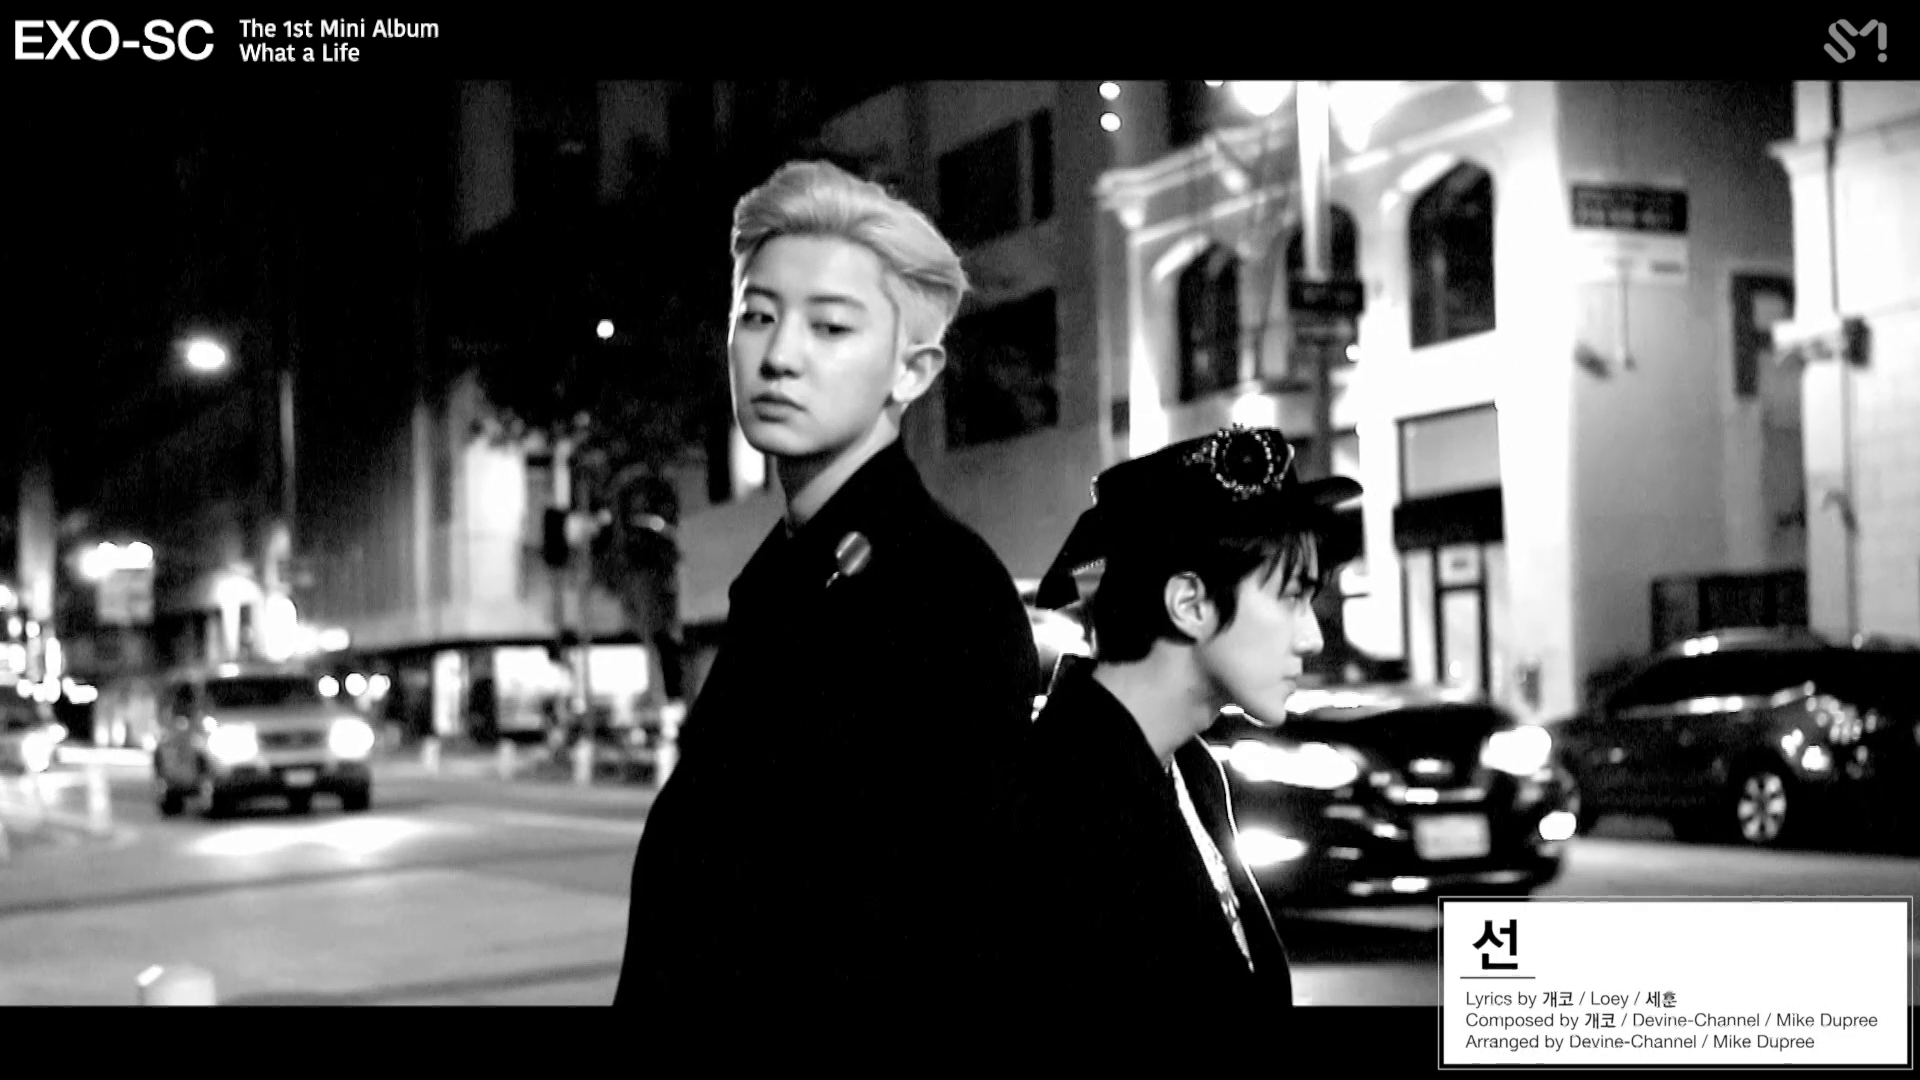 "EXO-SC 세훈&찬열 The 1st Mini Album ""What a life"" Highlight Medley"